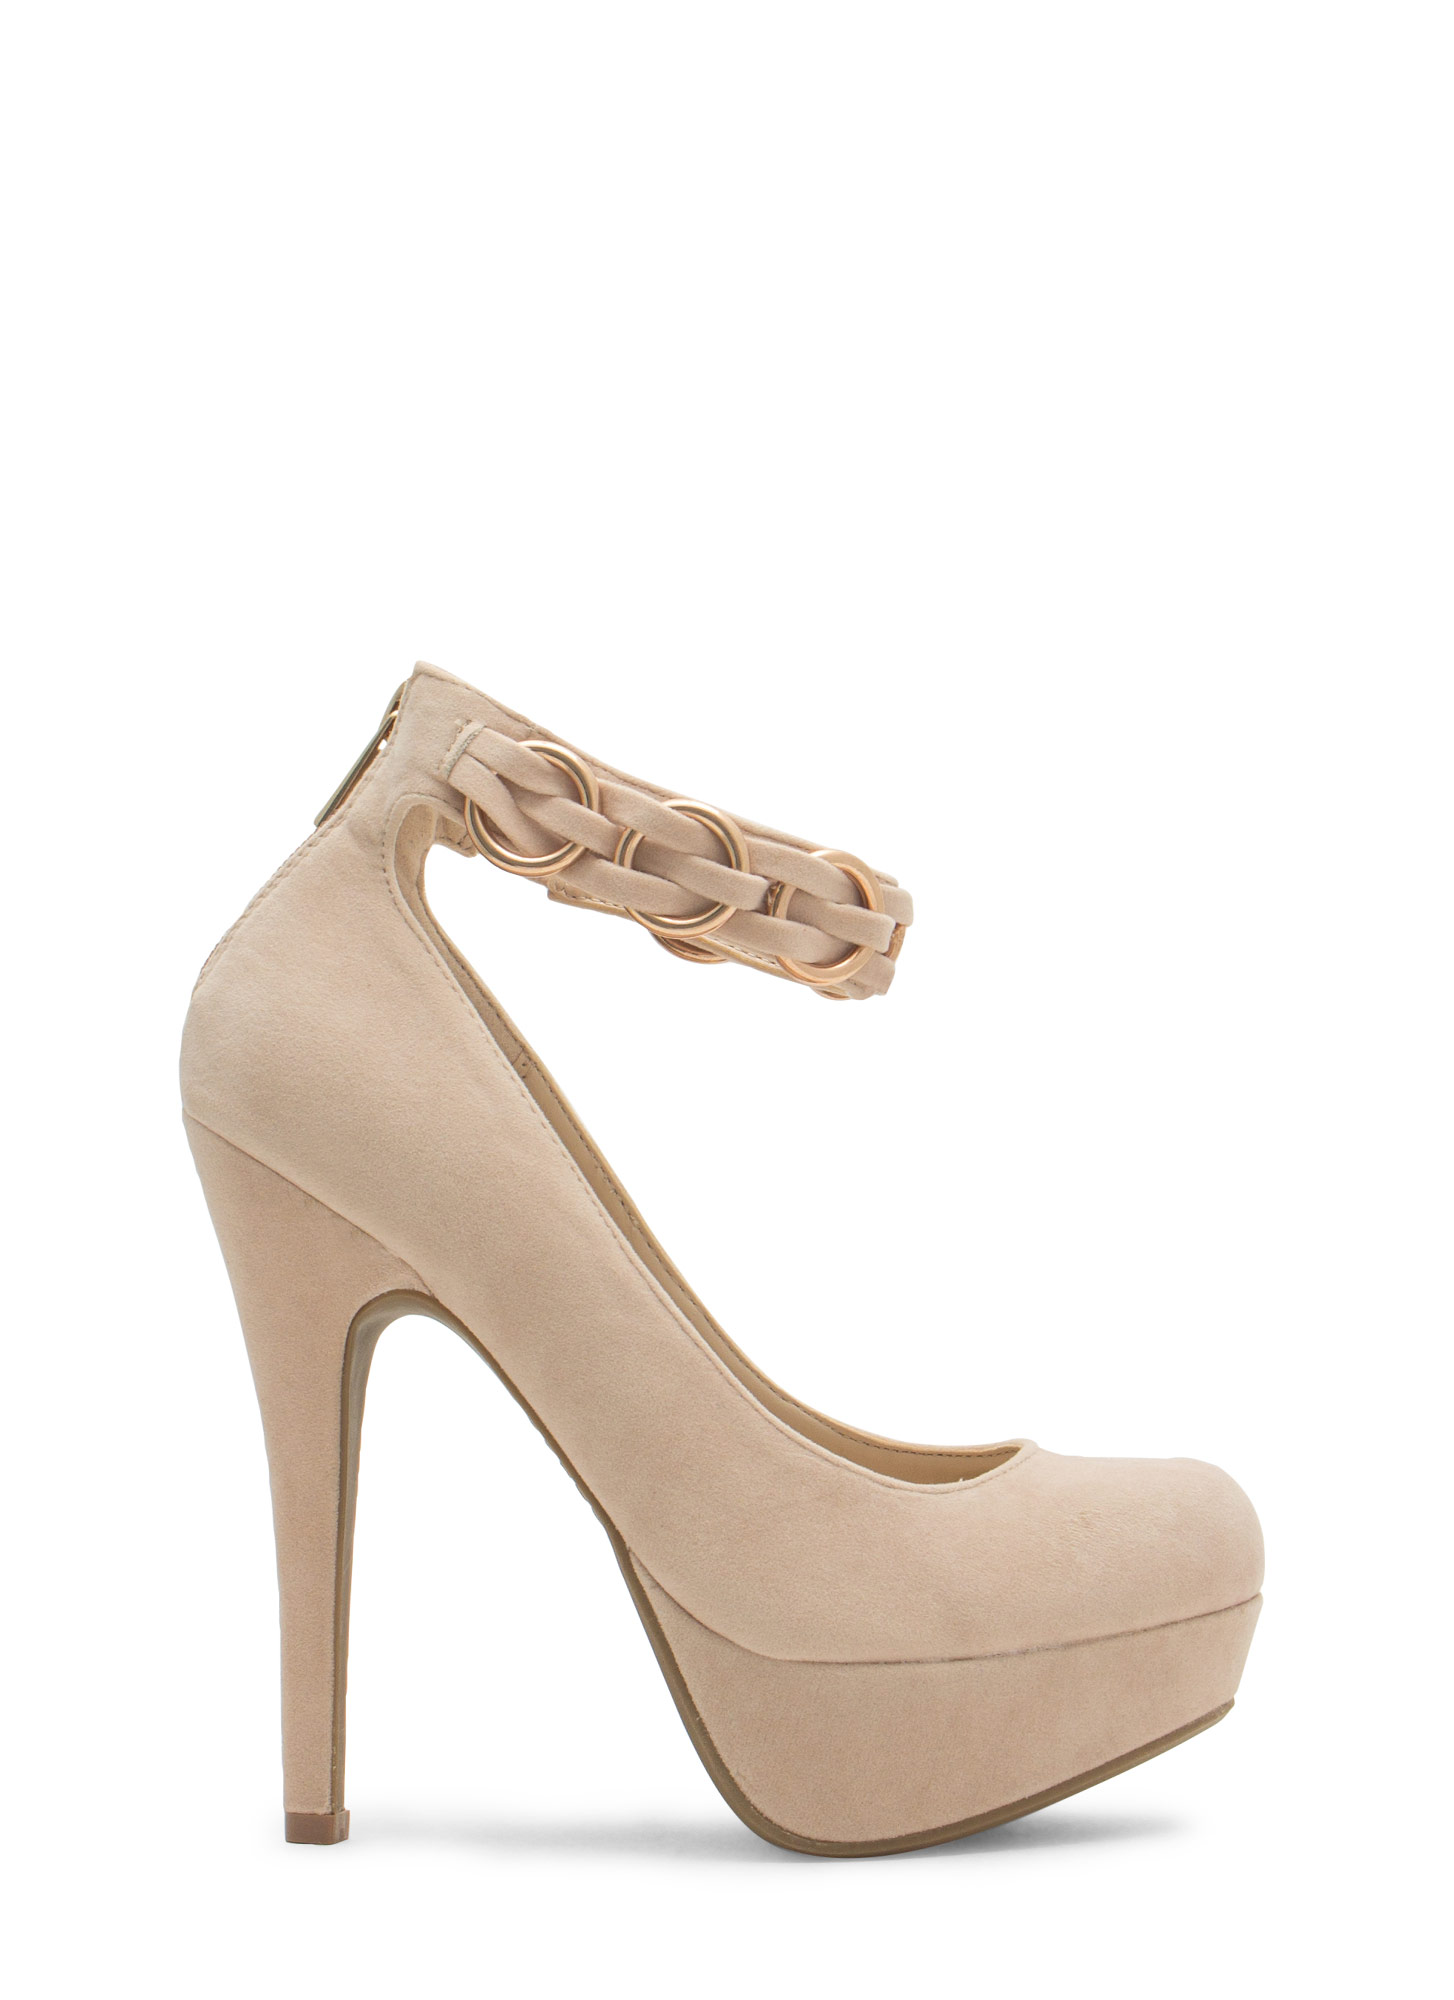 Bling Ring Ankle Strap Heels NUDE